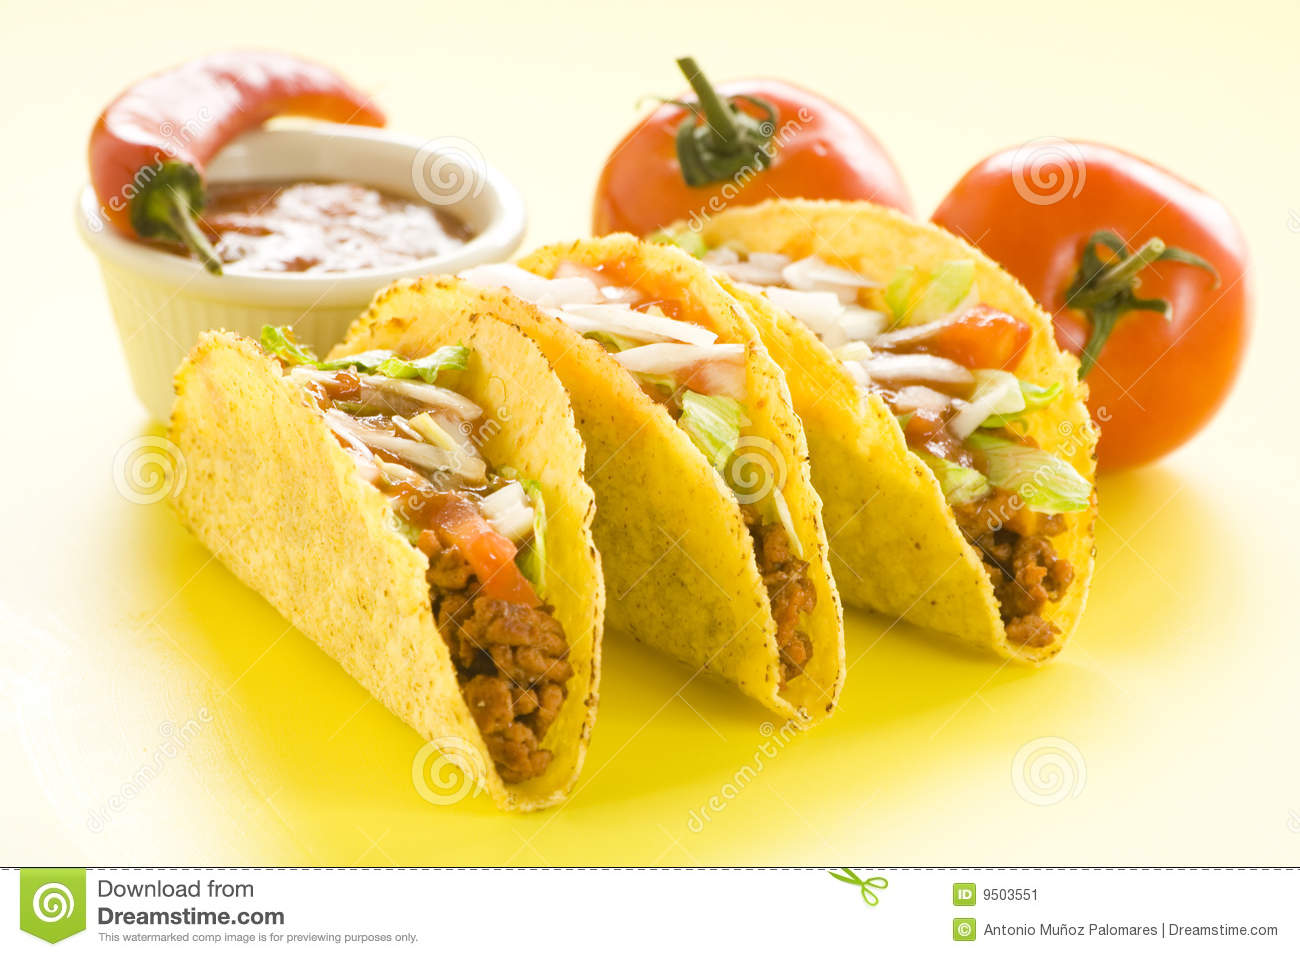 Delicious Taco, Mexican Food Stock Image - Image: 9503551